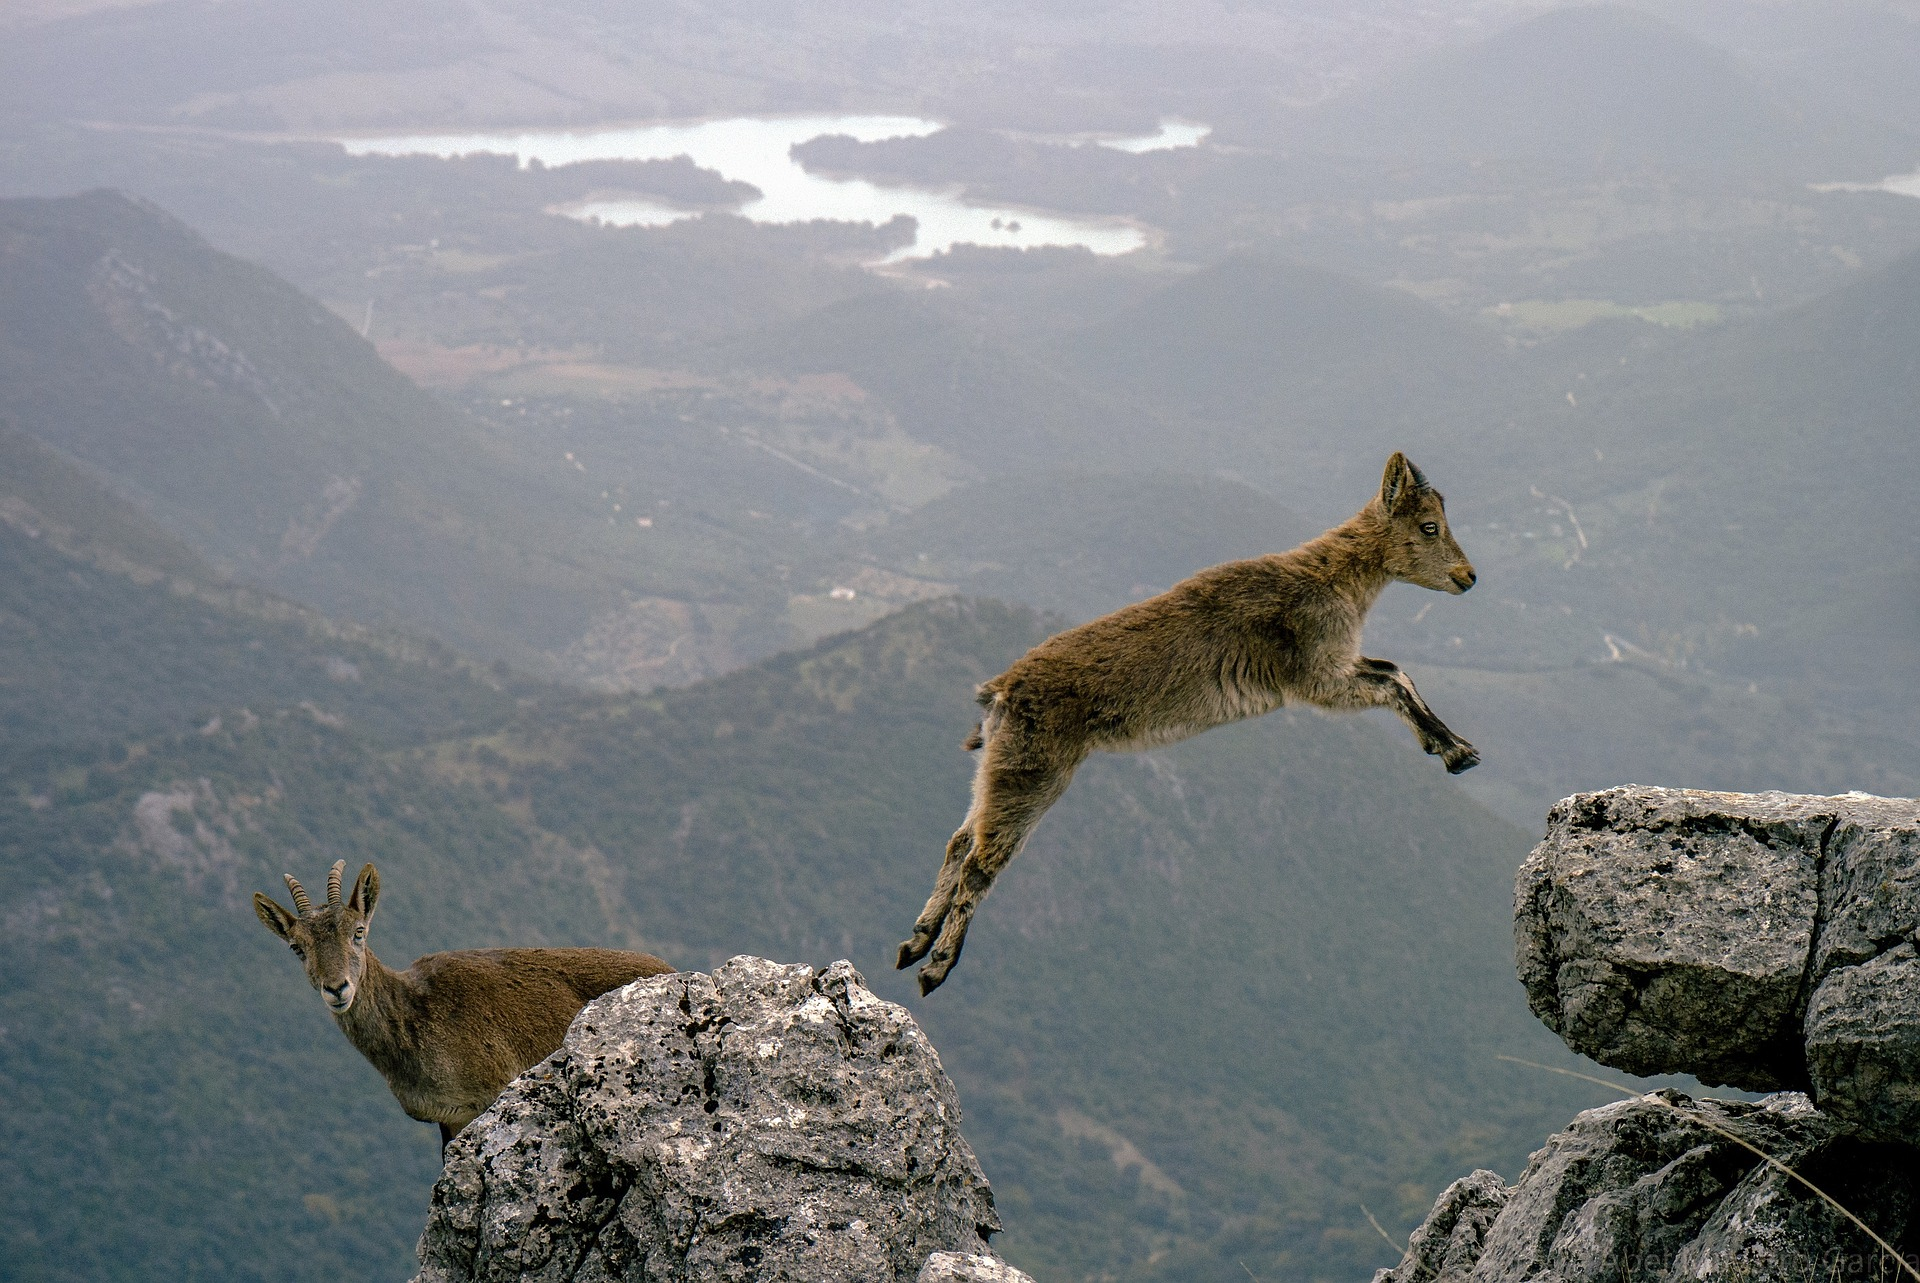 Two mountain goats. One is taking the leap. The other is thinking about it first!